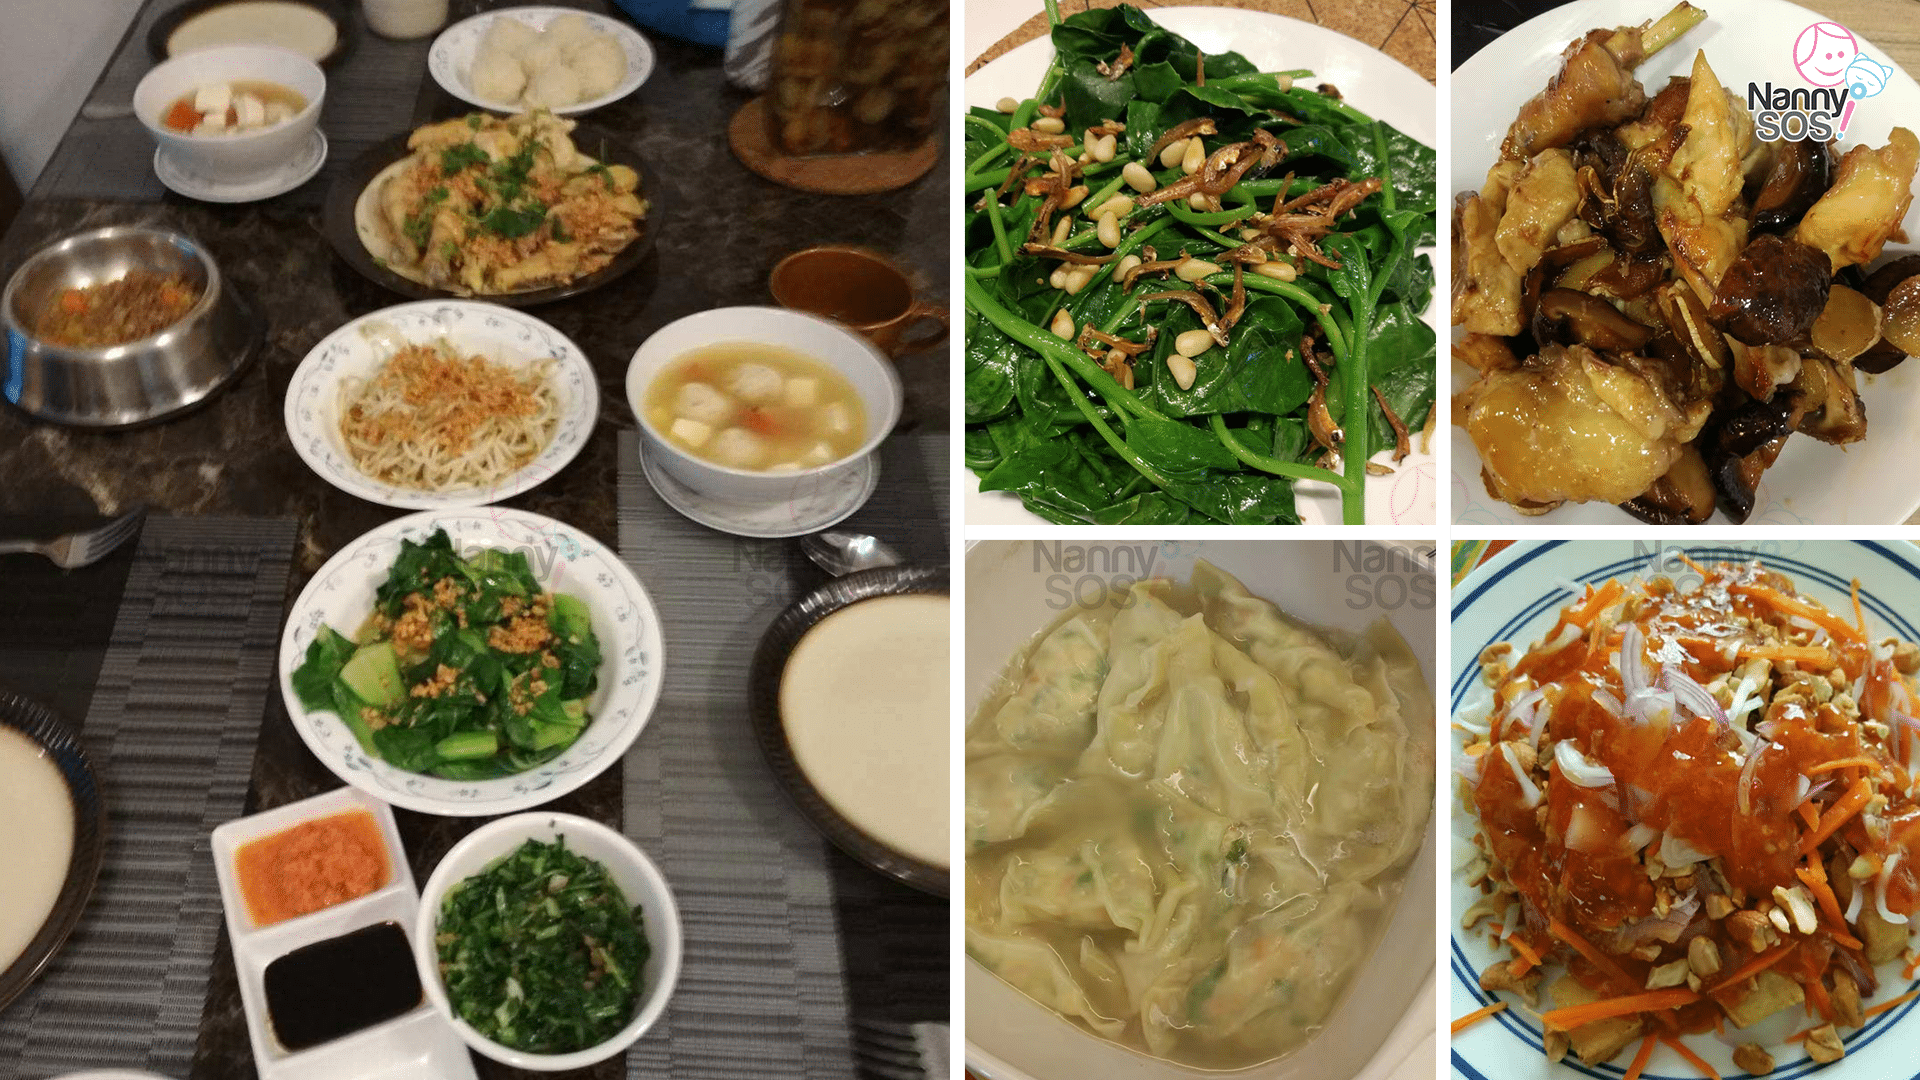 Confinement Meals by Nanny Chan in Singapore